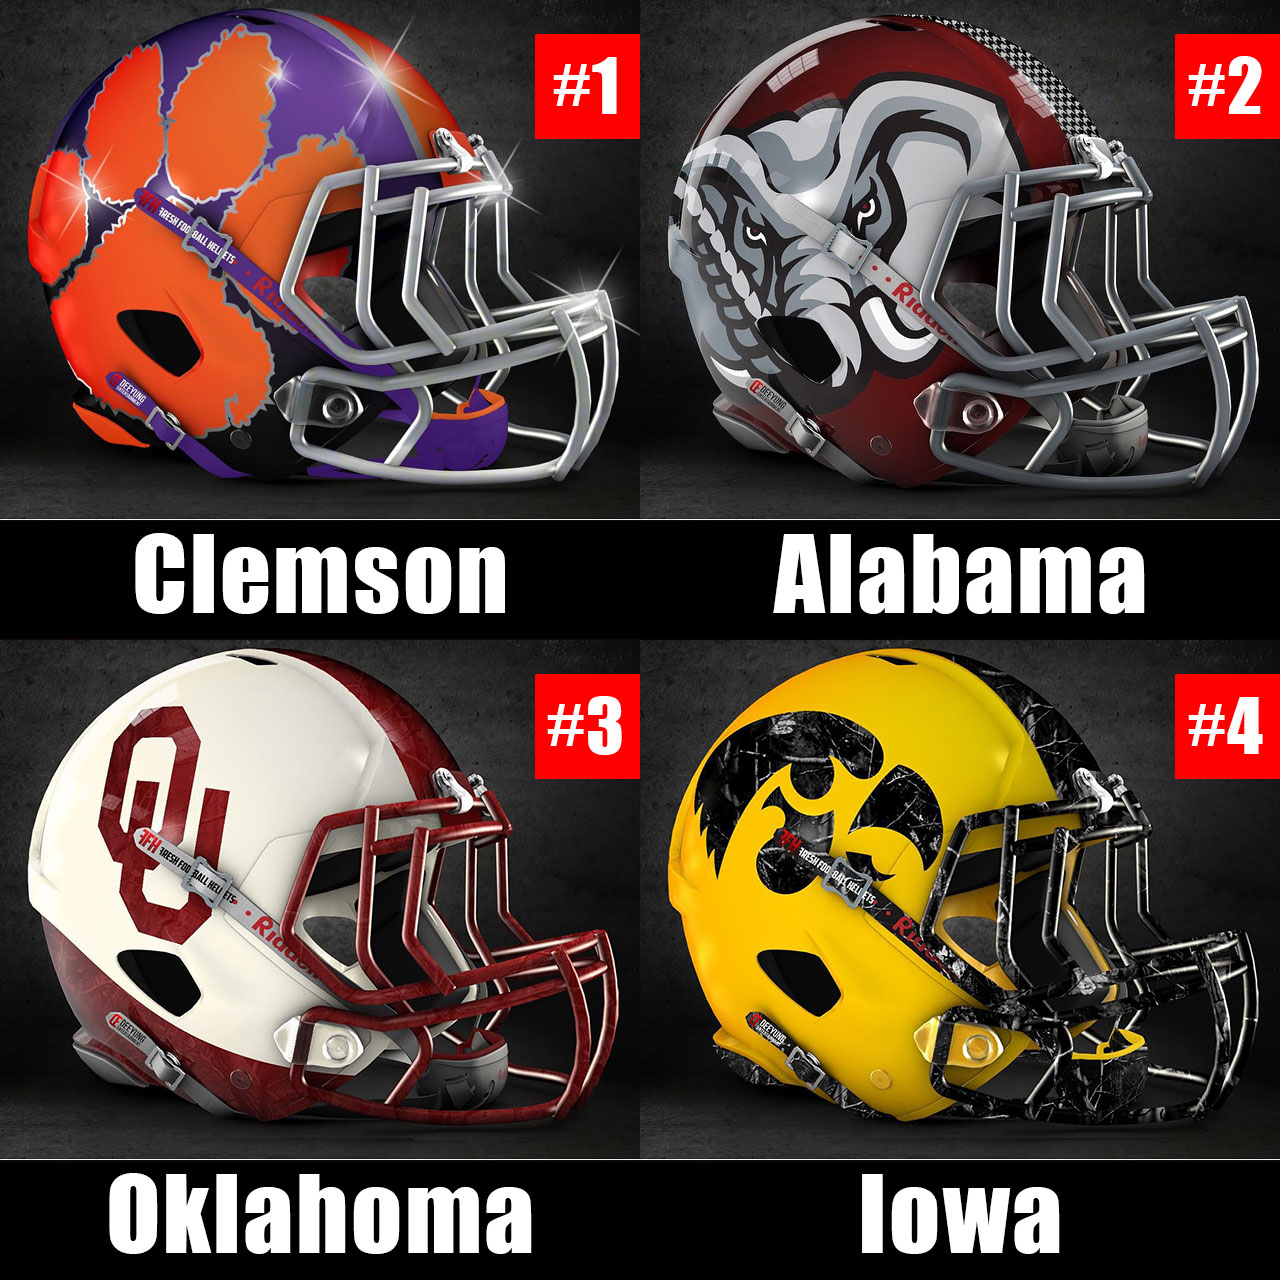 College Football Playoff Top Four with Tigers, Crimson Tide, Sooners, Hawkeyes